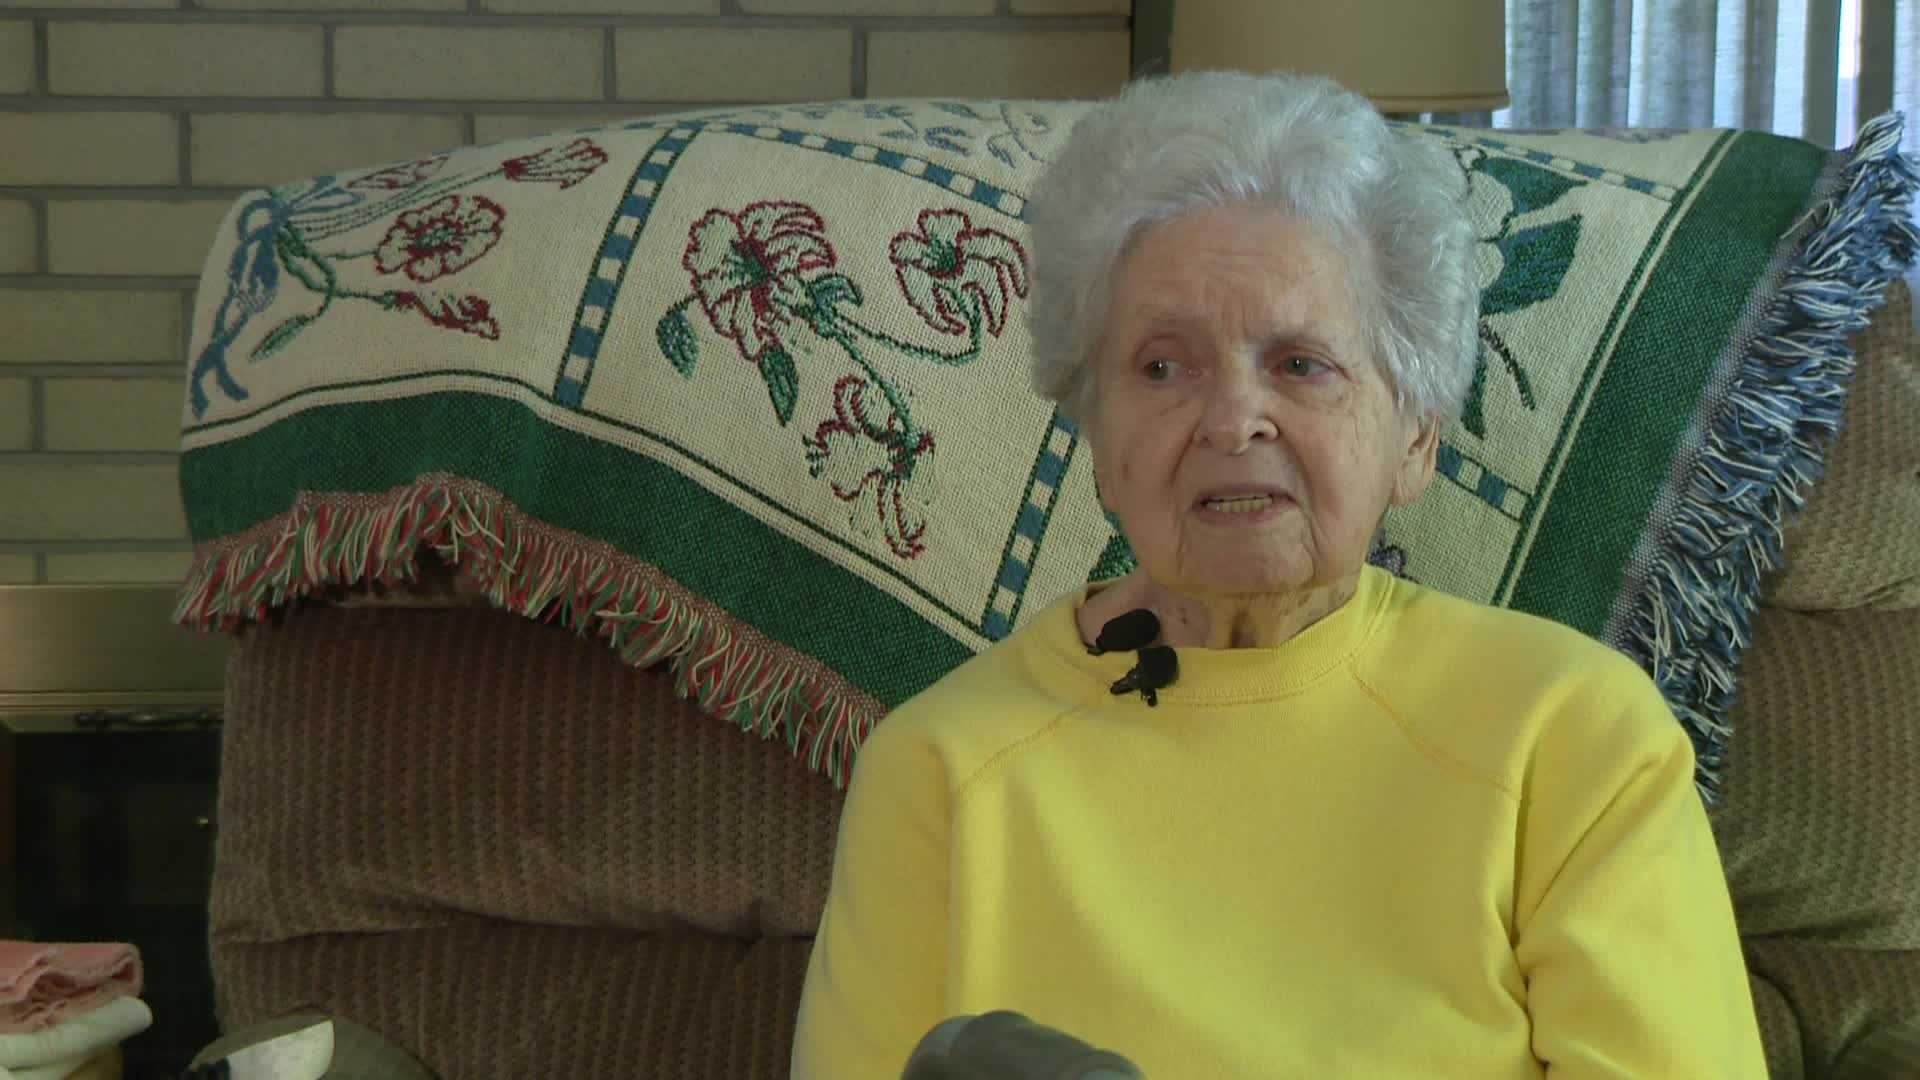 Robber took a ring her late husband gave her in the 1950's